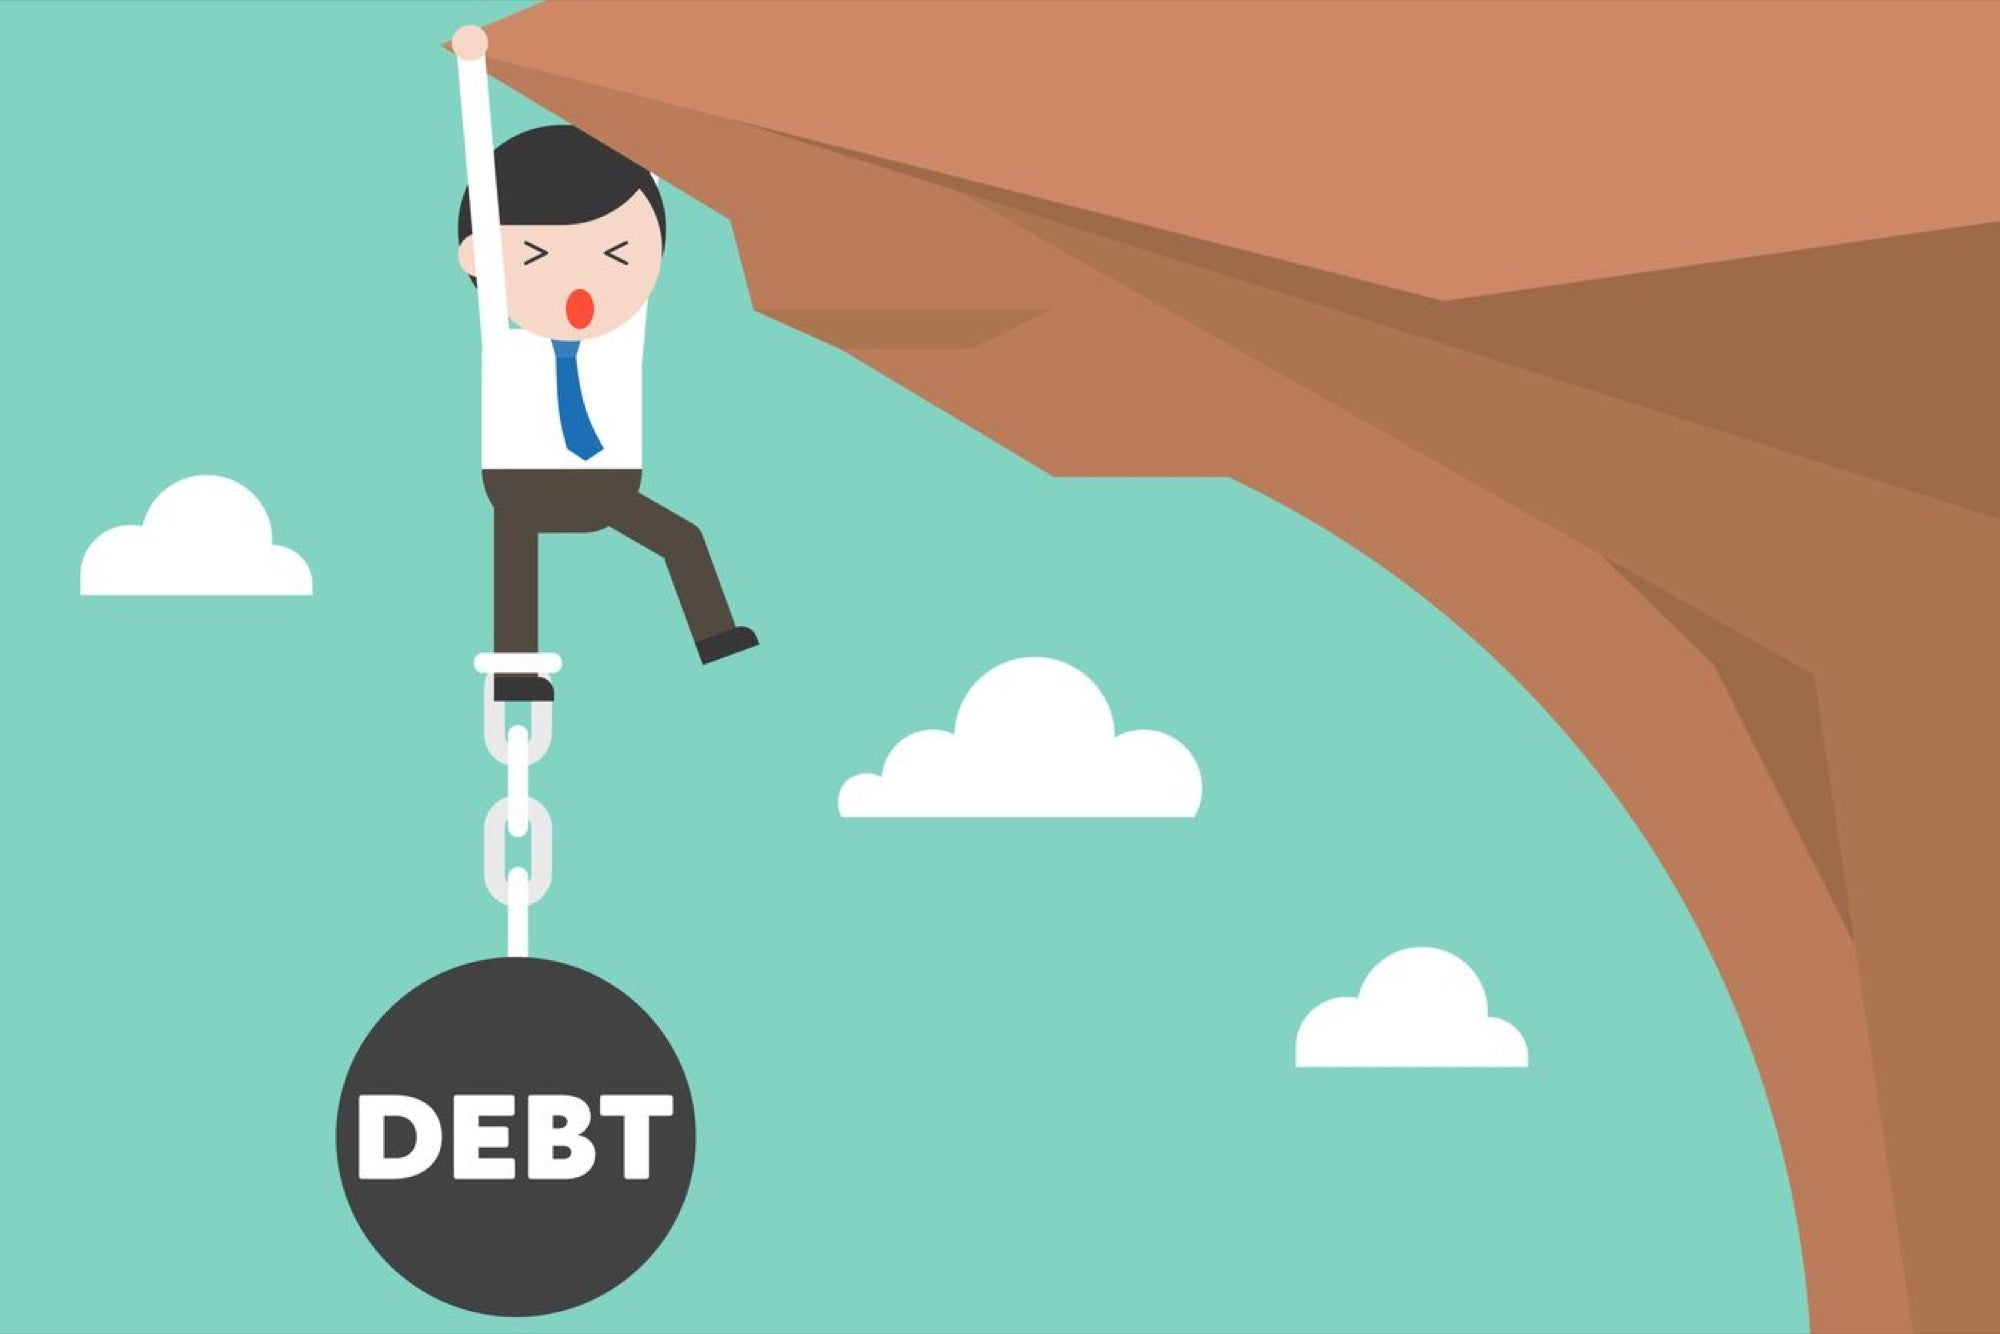 Learning debt